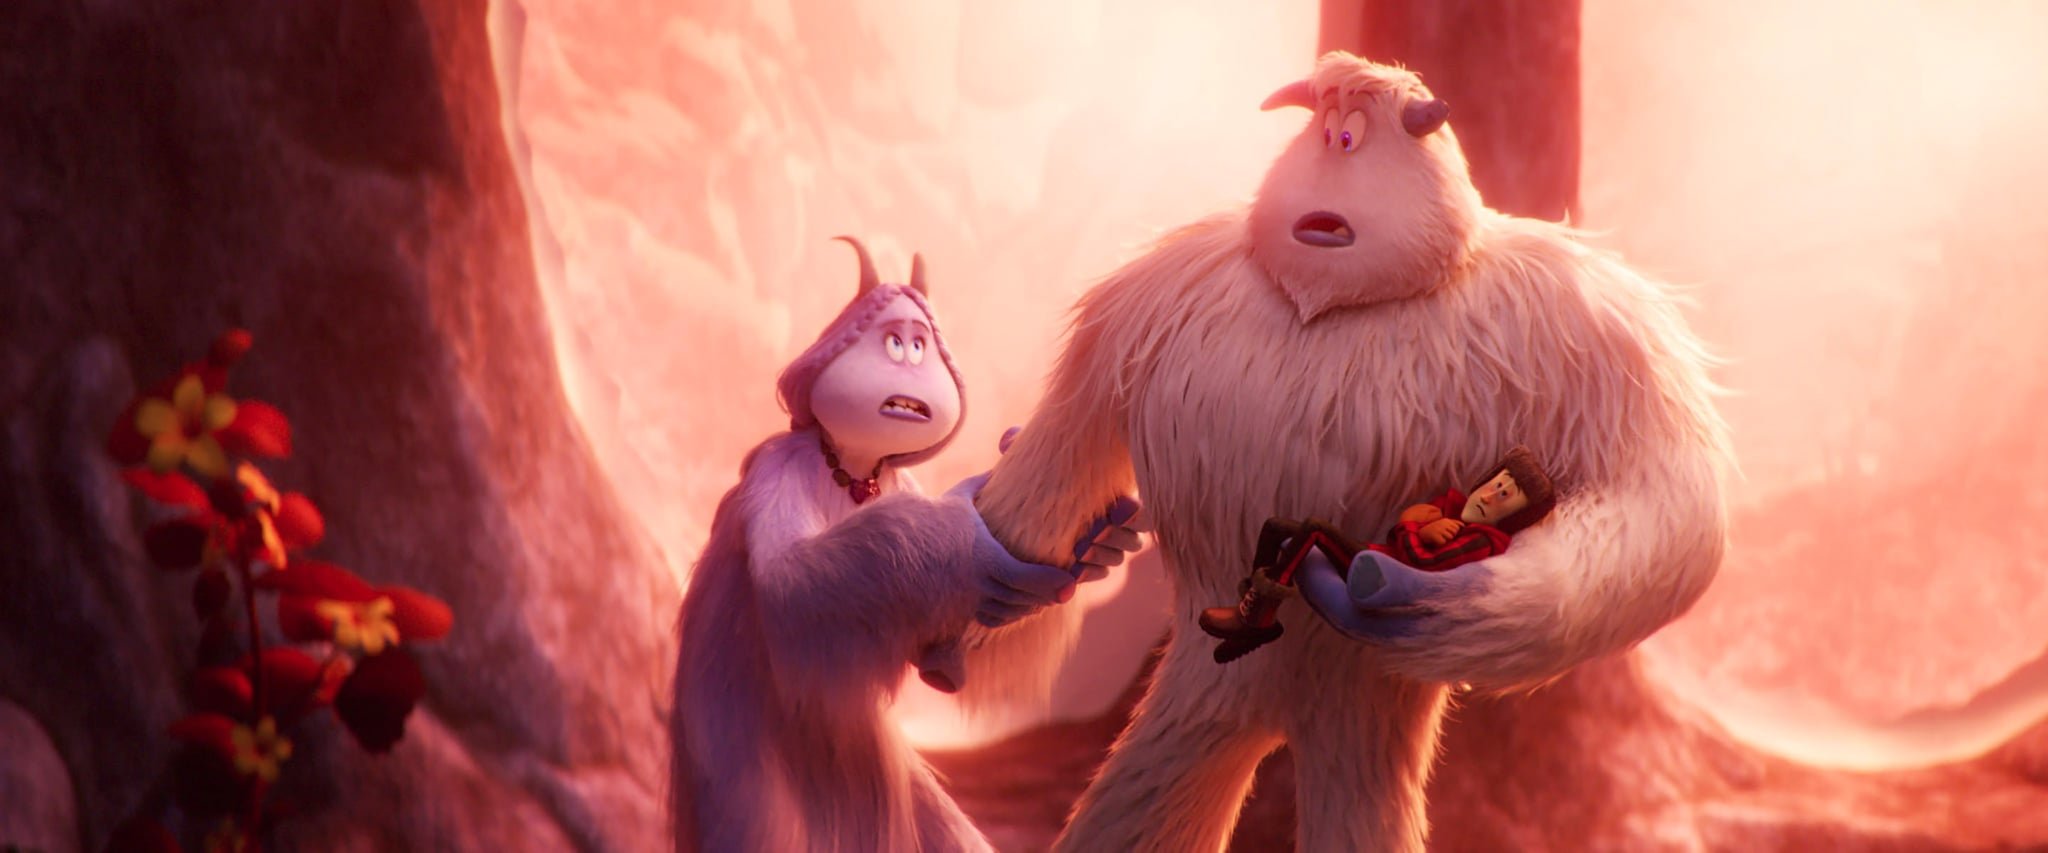 Smallfoot 2018 11 Movie And Tv Show Roles That Prove Zendaya More Than Deserves Her Emmy Win Popsugar Entertainment Photo 10